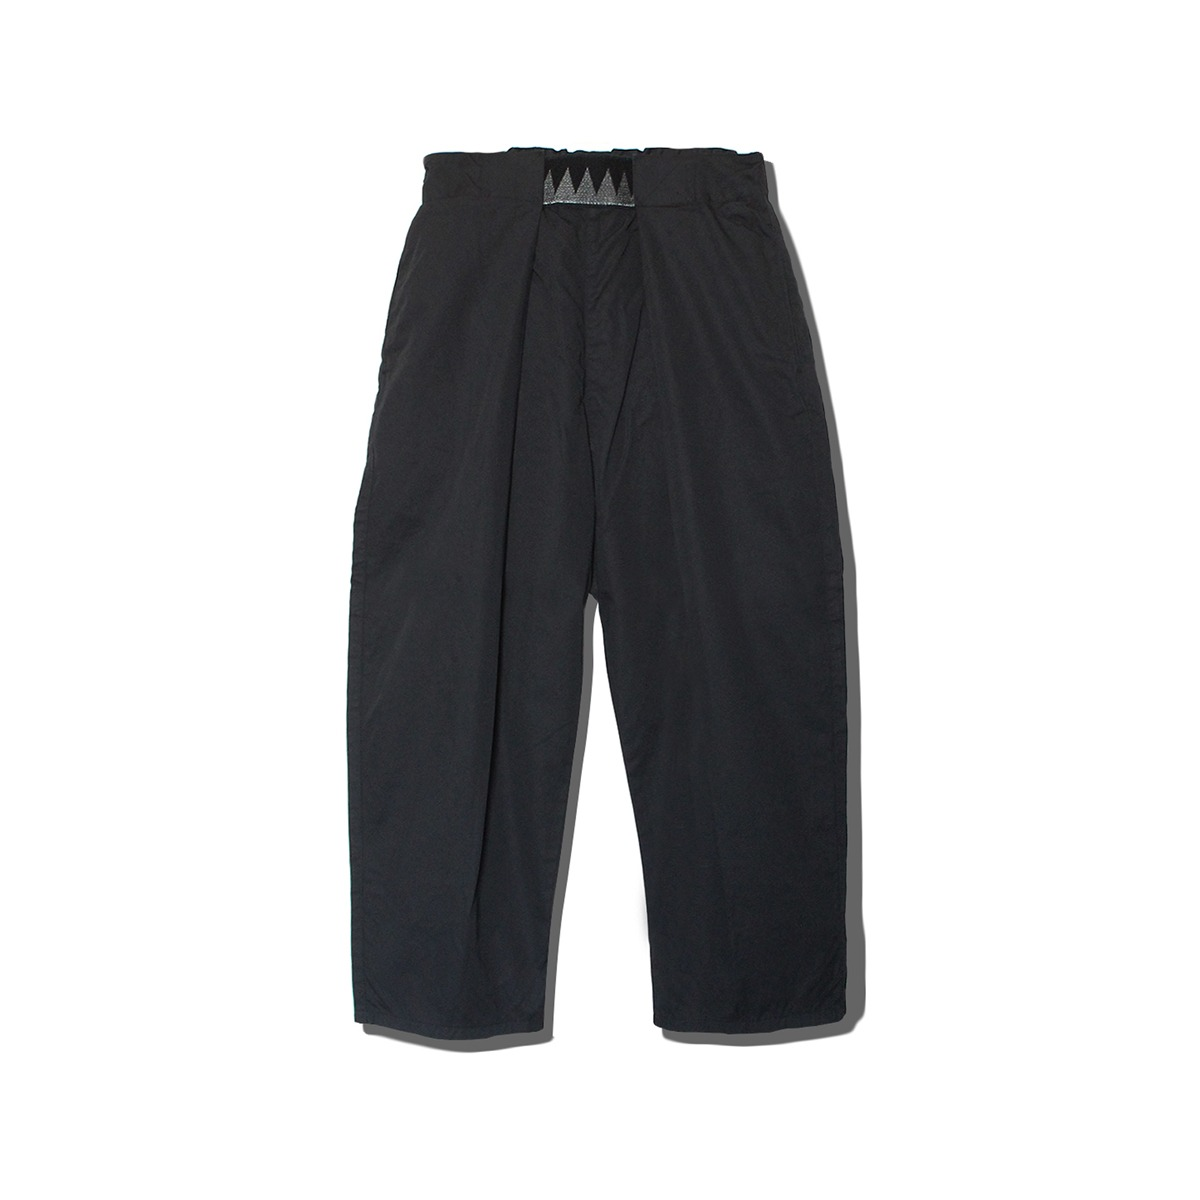 [KAPITAL] COMBED BURBERRY COTTON EASY-BEACH-GO PANTS 'BLACK'